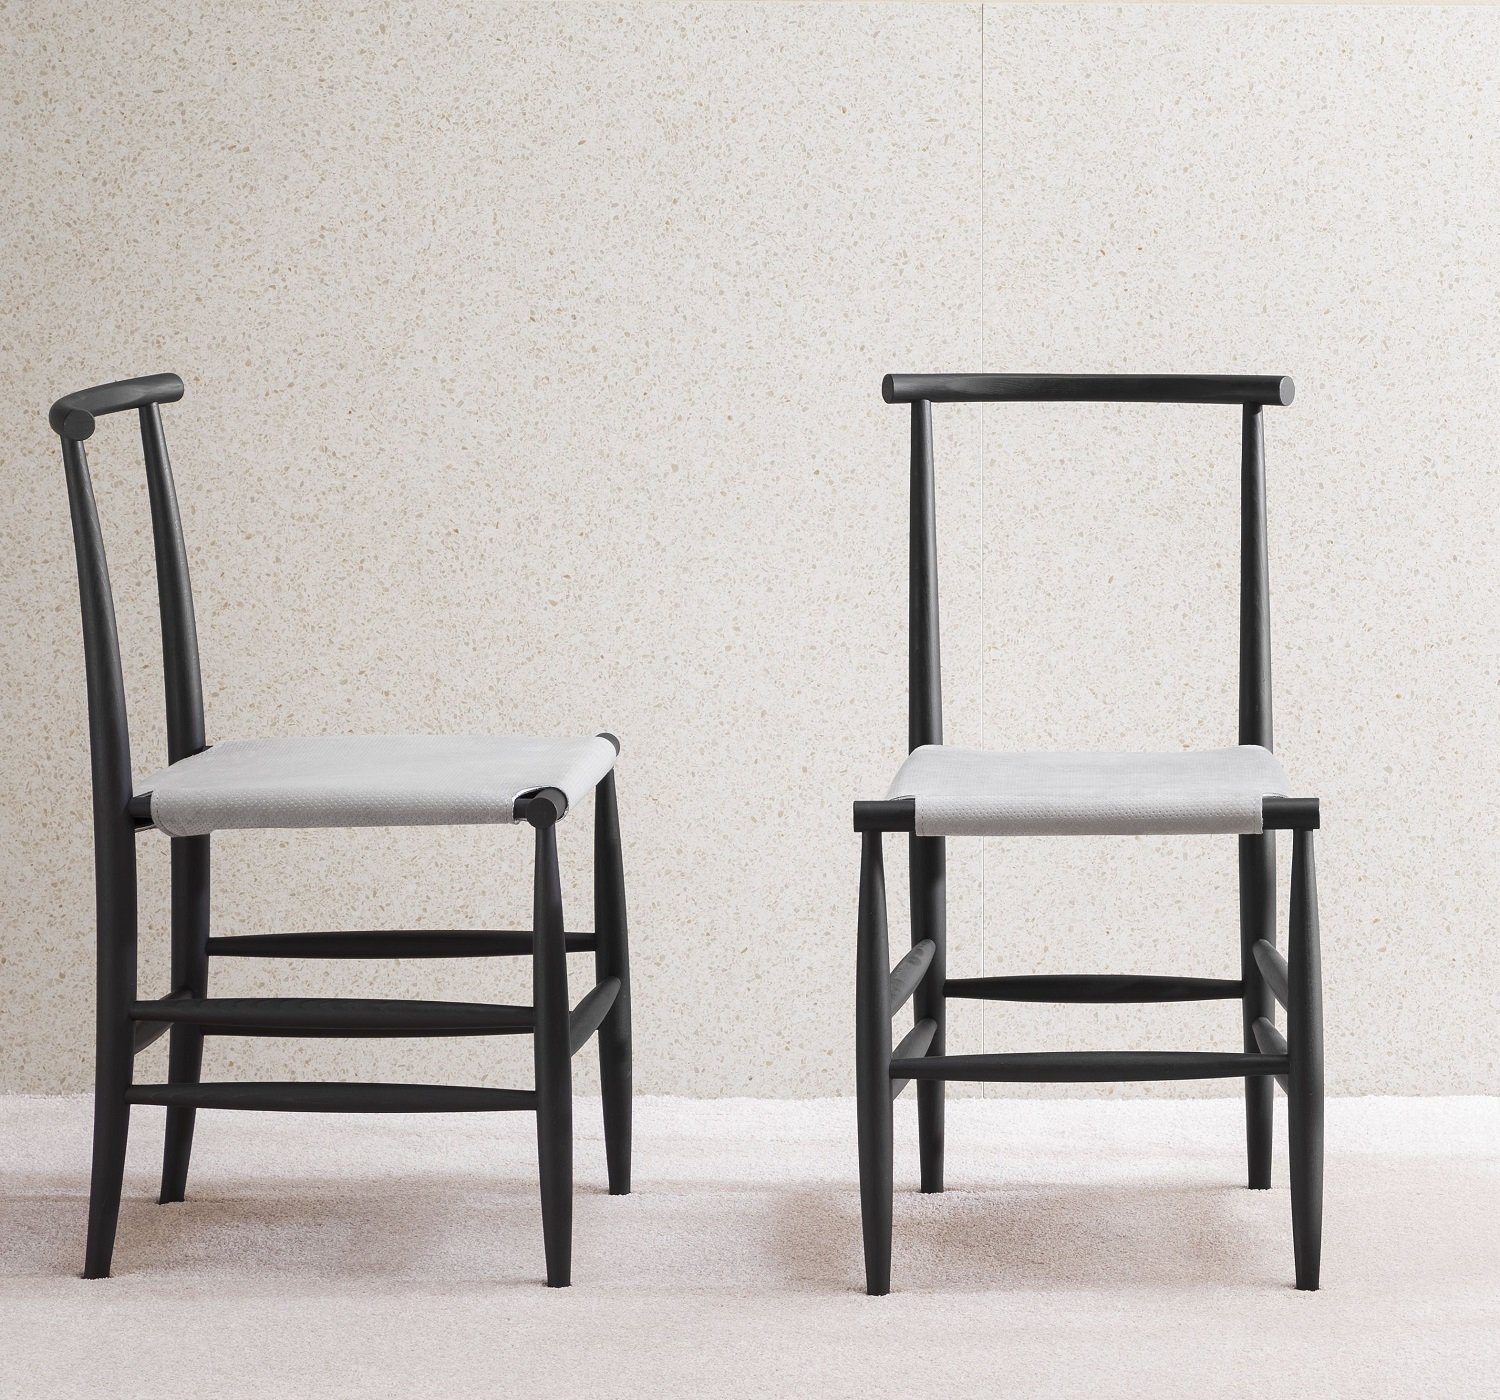 Pelleossa Chair from Miniforms, designed by Francesco Faccin